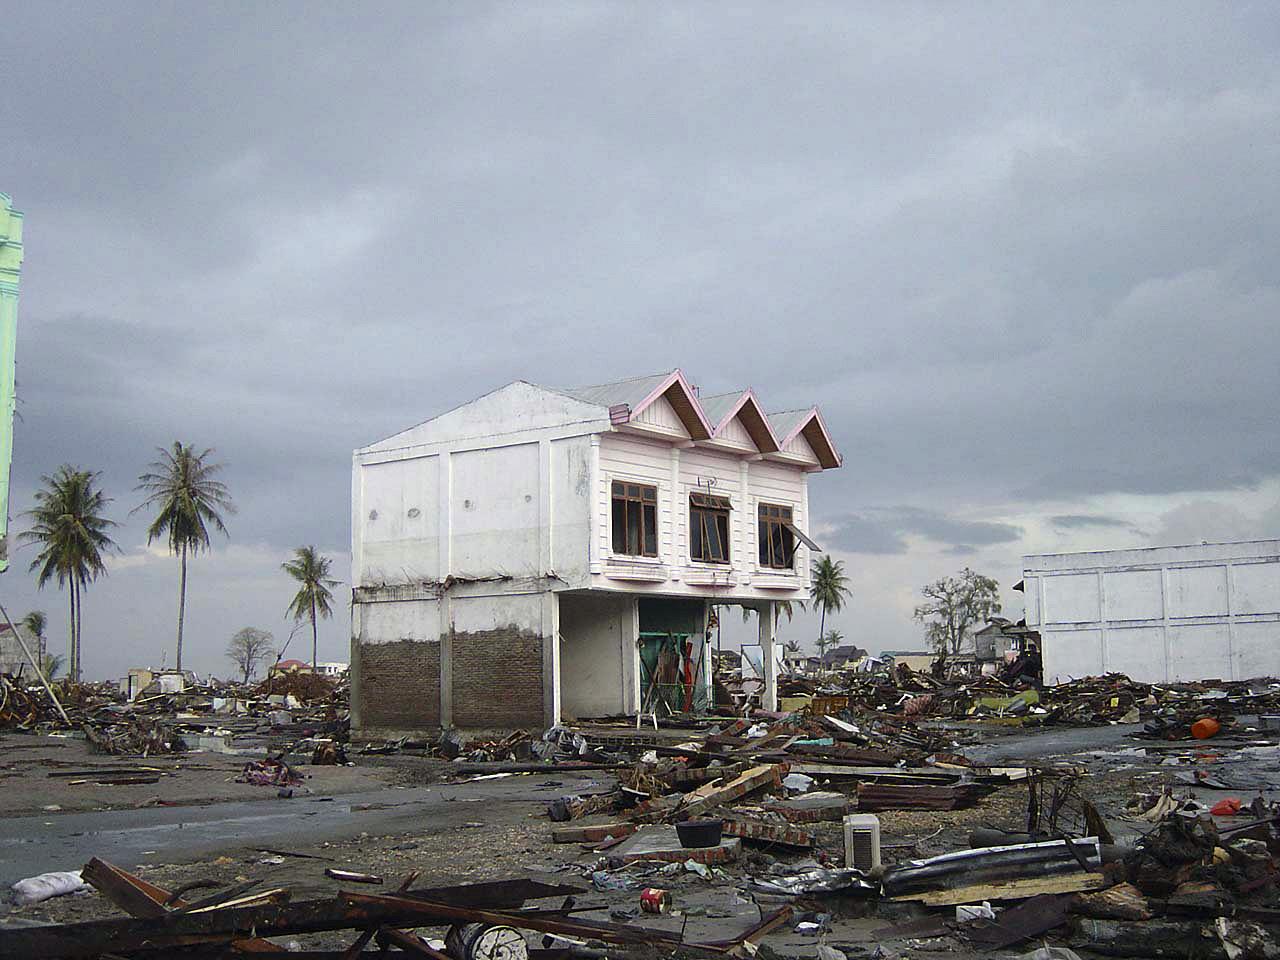 file street in downtown banda aceh after 2004 tsunami dd sd 06